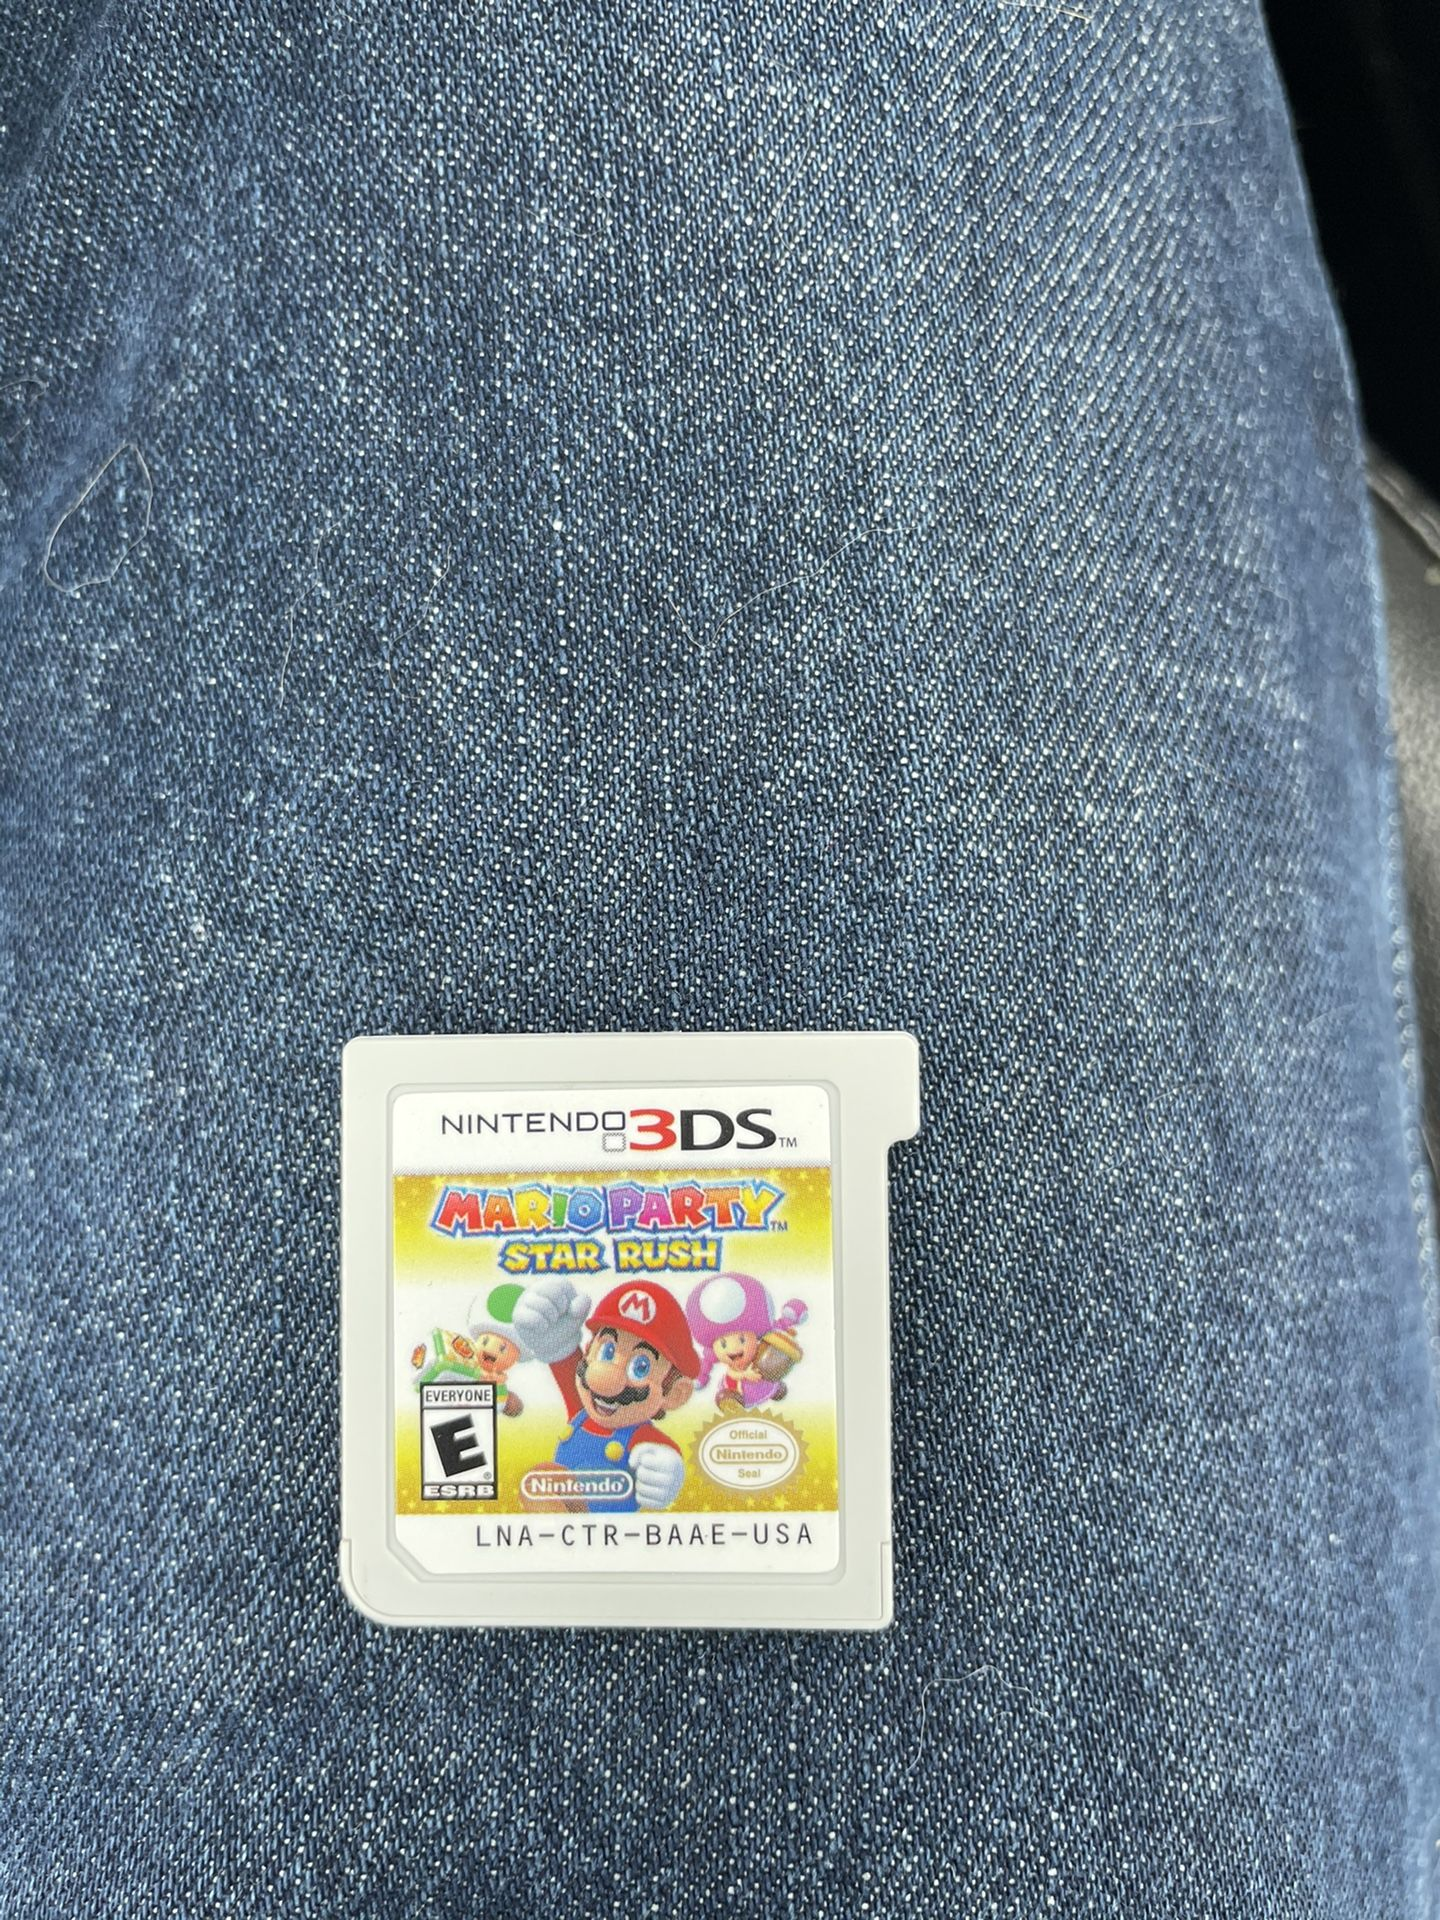 Nintendo 3D DS Games And DS Games